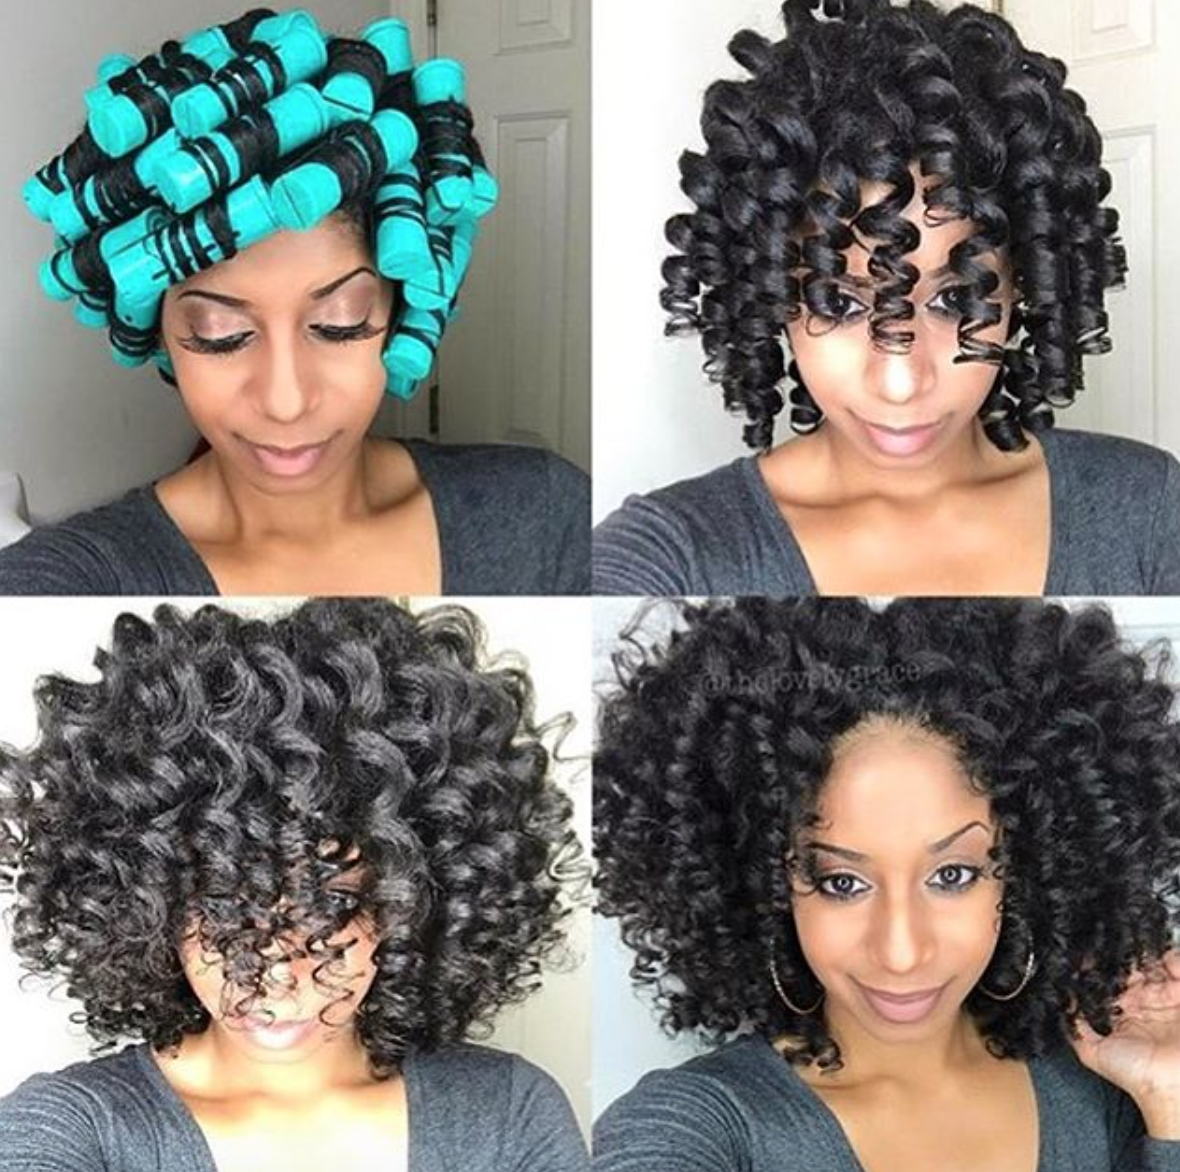 Backgrounds black hair roller set styles of styles for mobile full hd pics gorgeous curls thelovelygrace httpsblackhairinformationcom